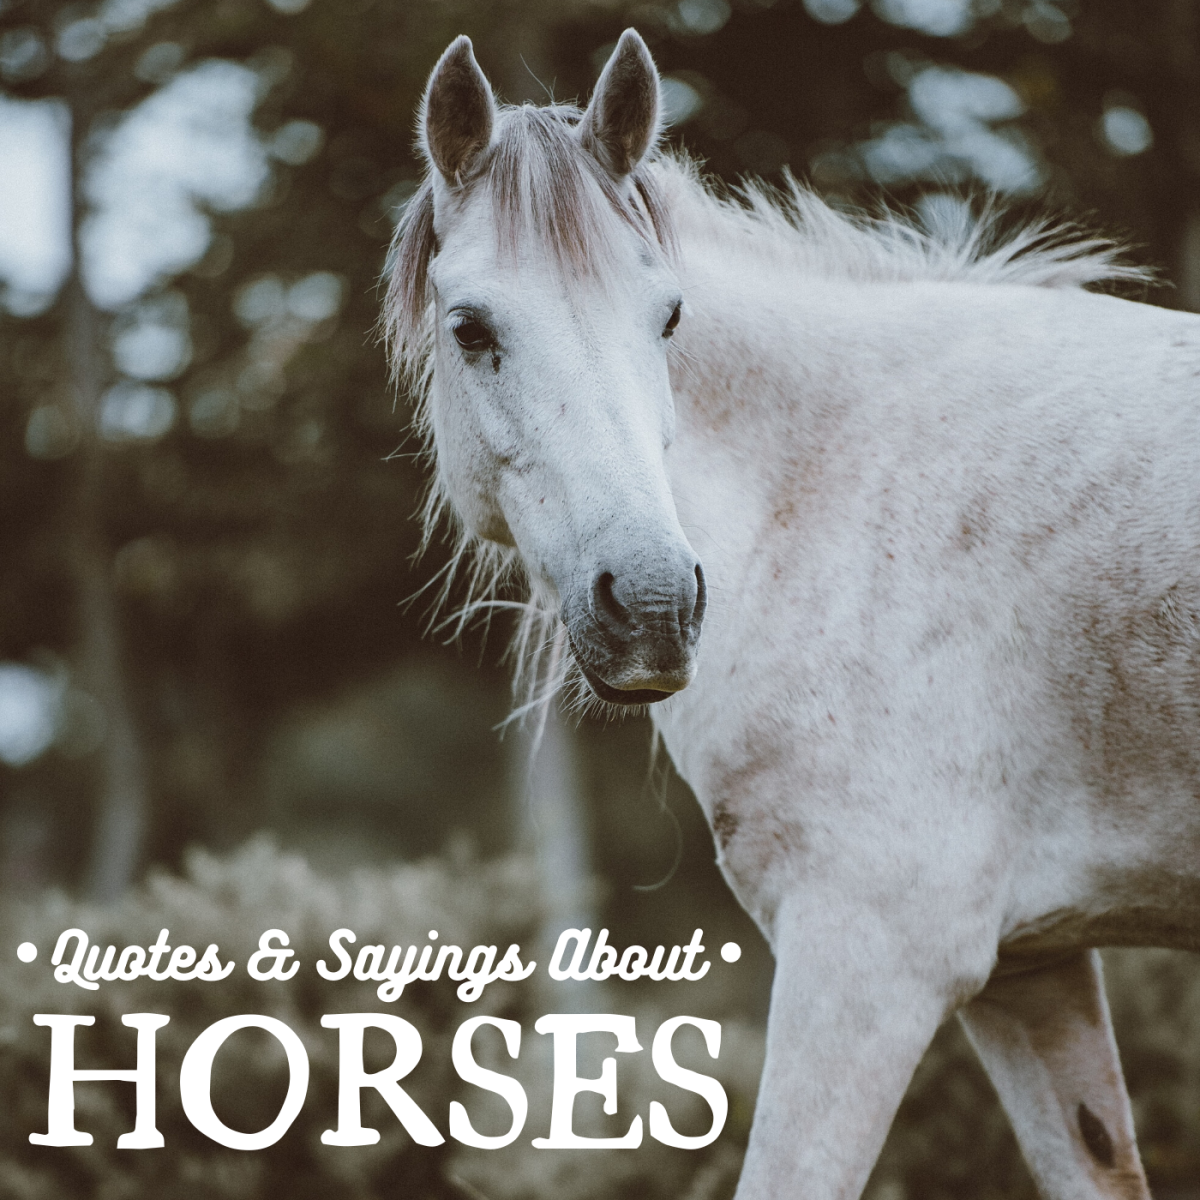 Horses have been companions to humankind for millennia—these quotes are all about their importance in our lives.